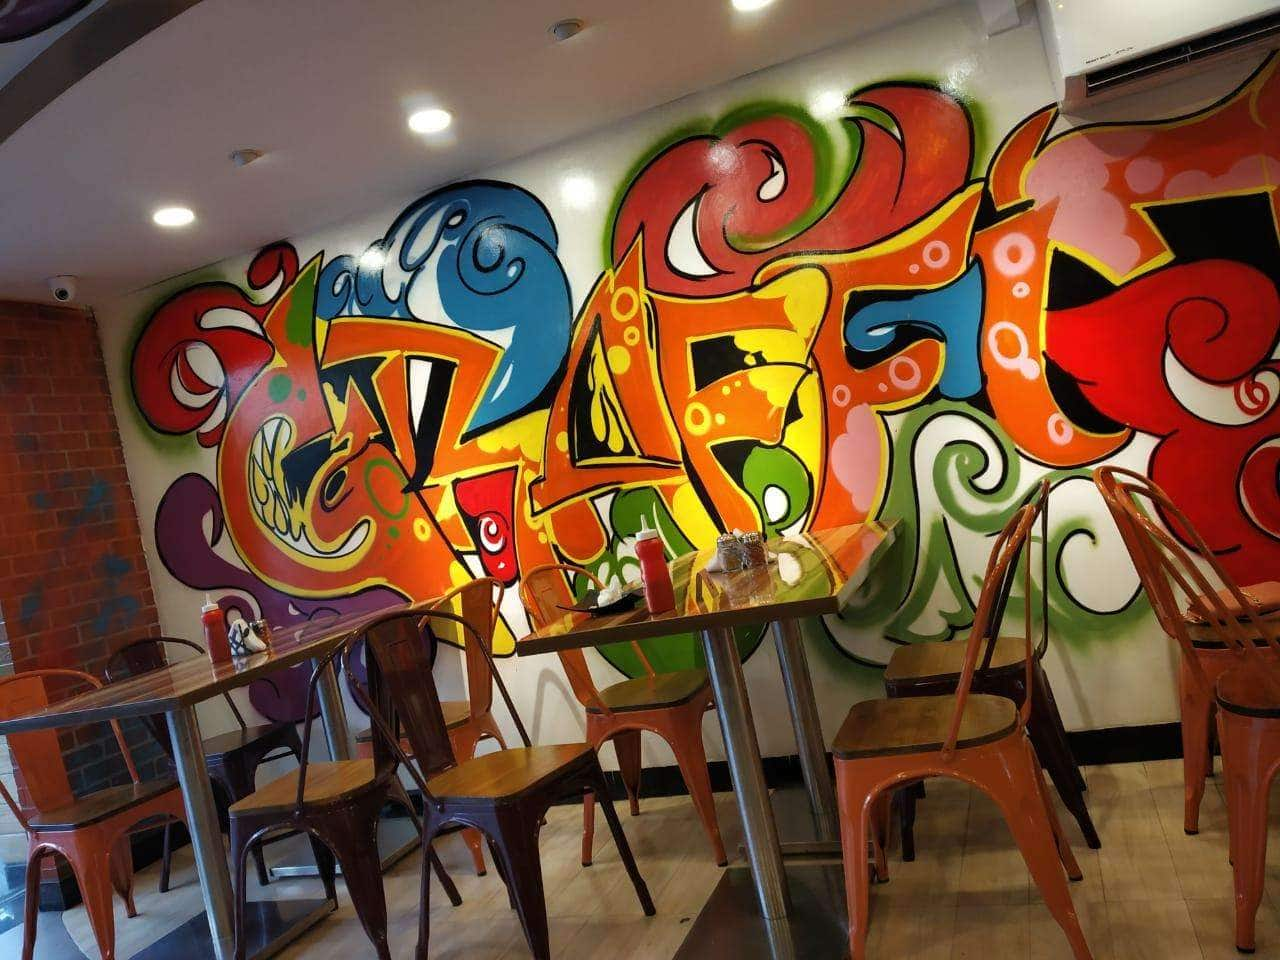 Hydfoodiesisterss review for cafe graffiti pizzeria